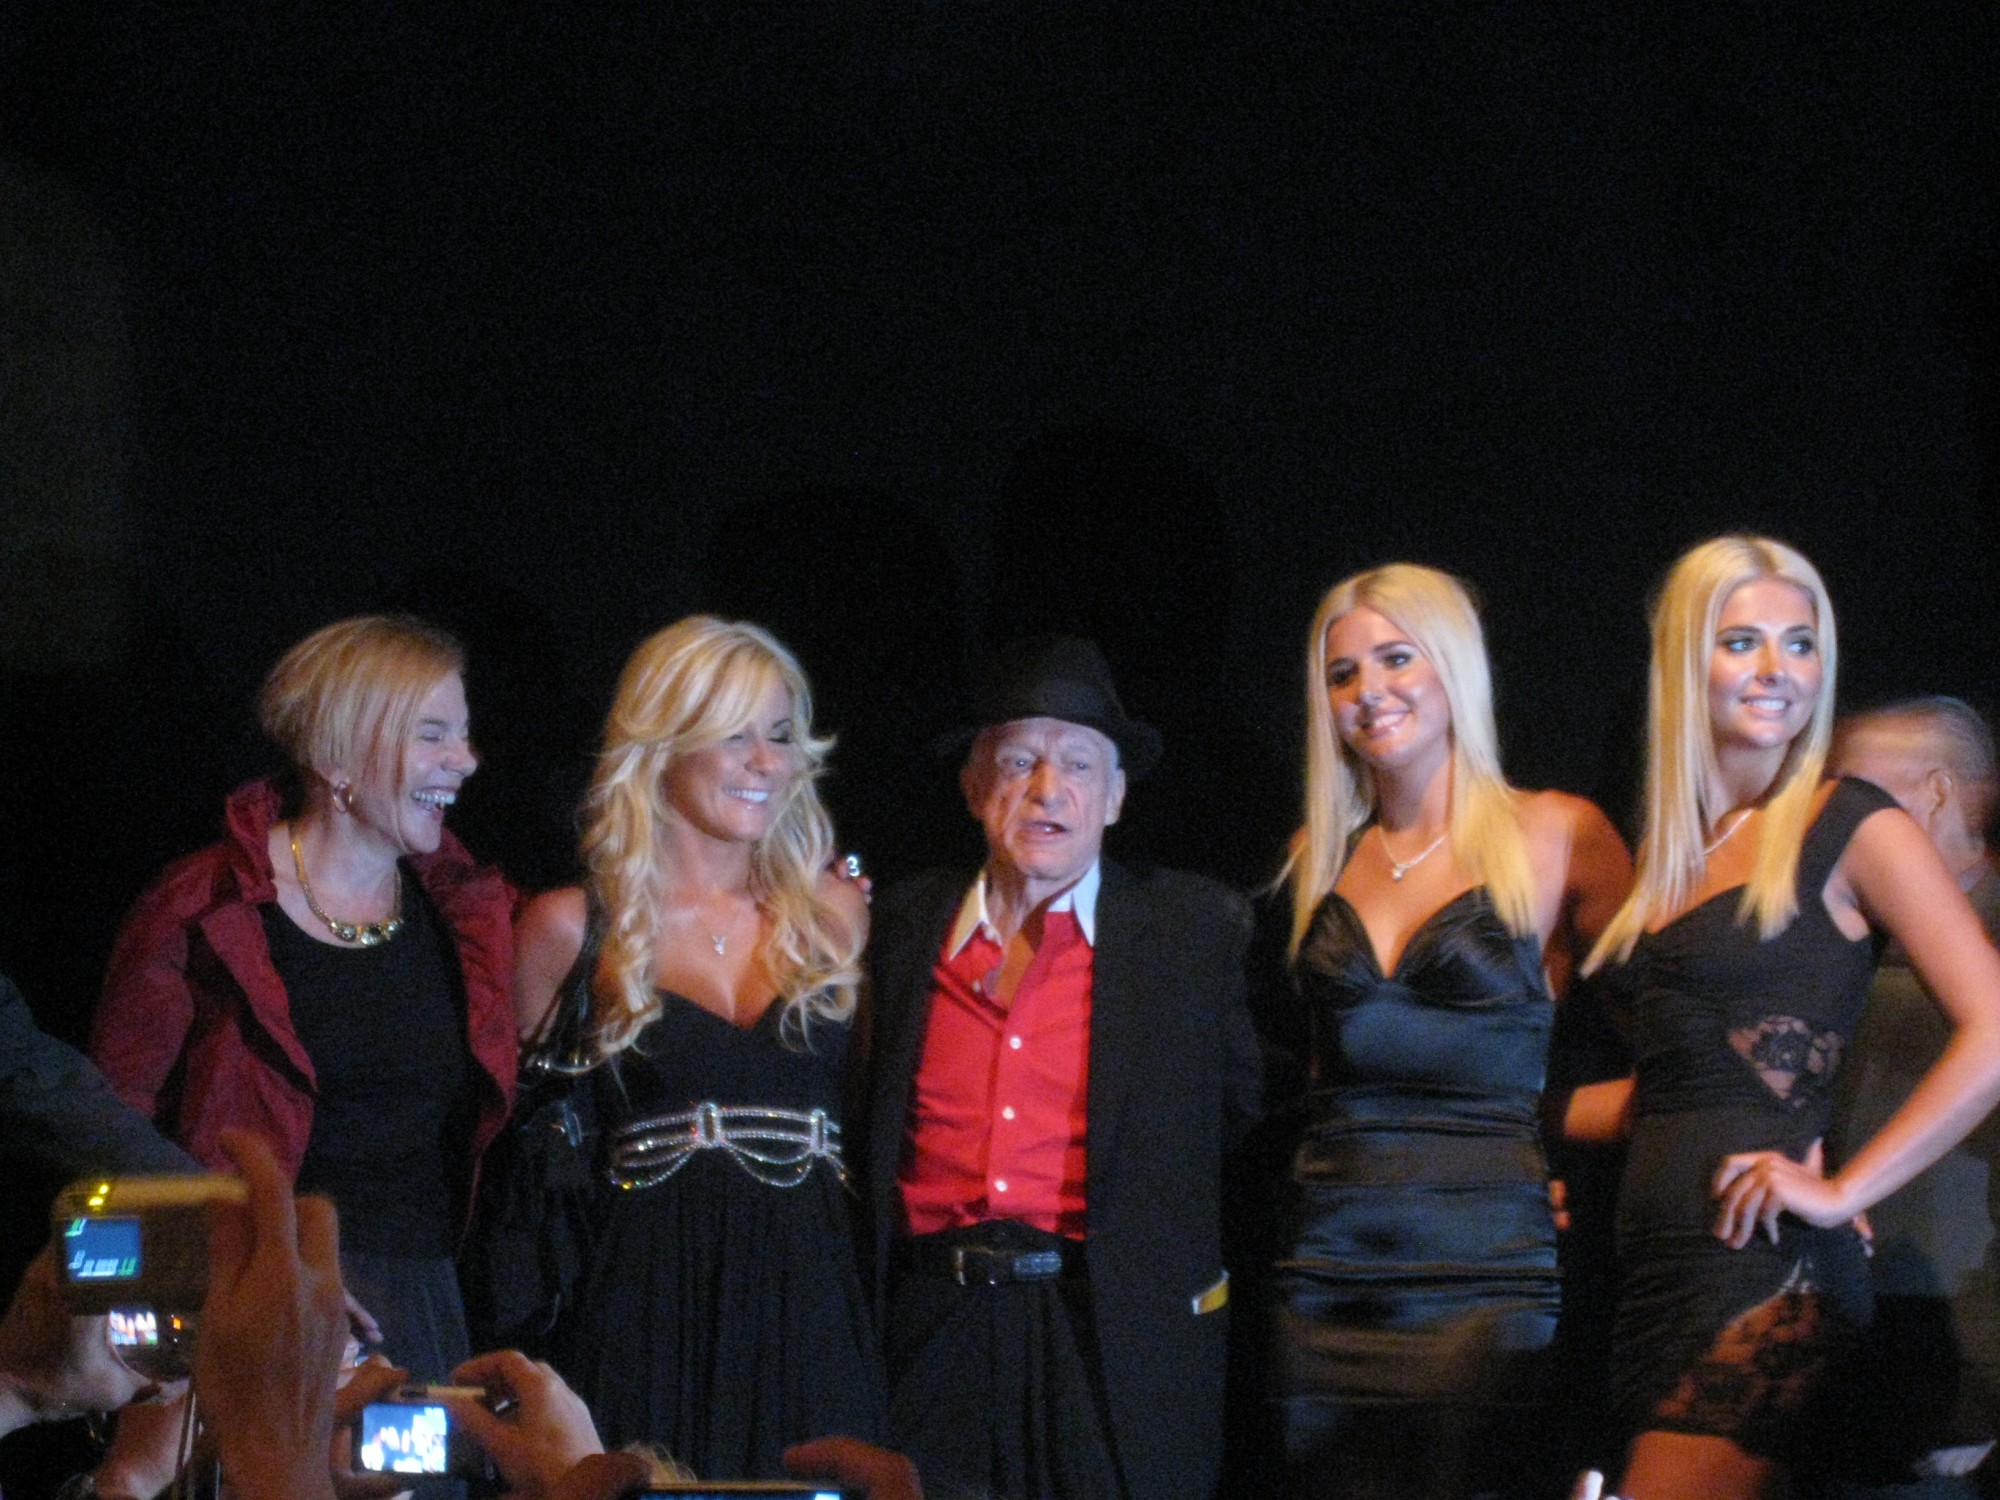 Hugh Hefner S Legacy Is More Complicated Than It Appears The Diamondback